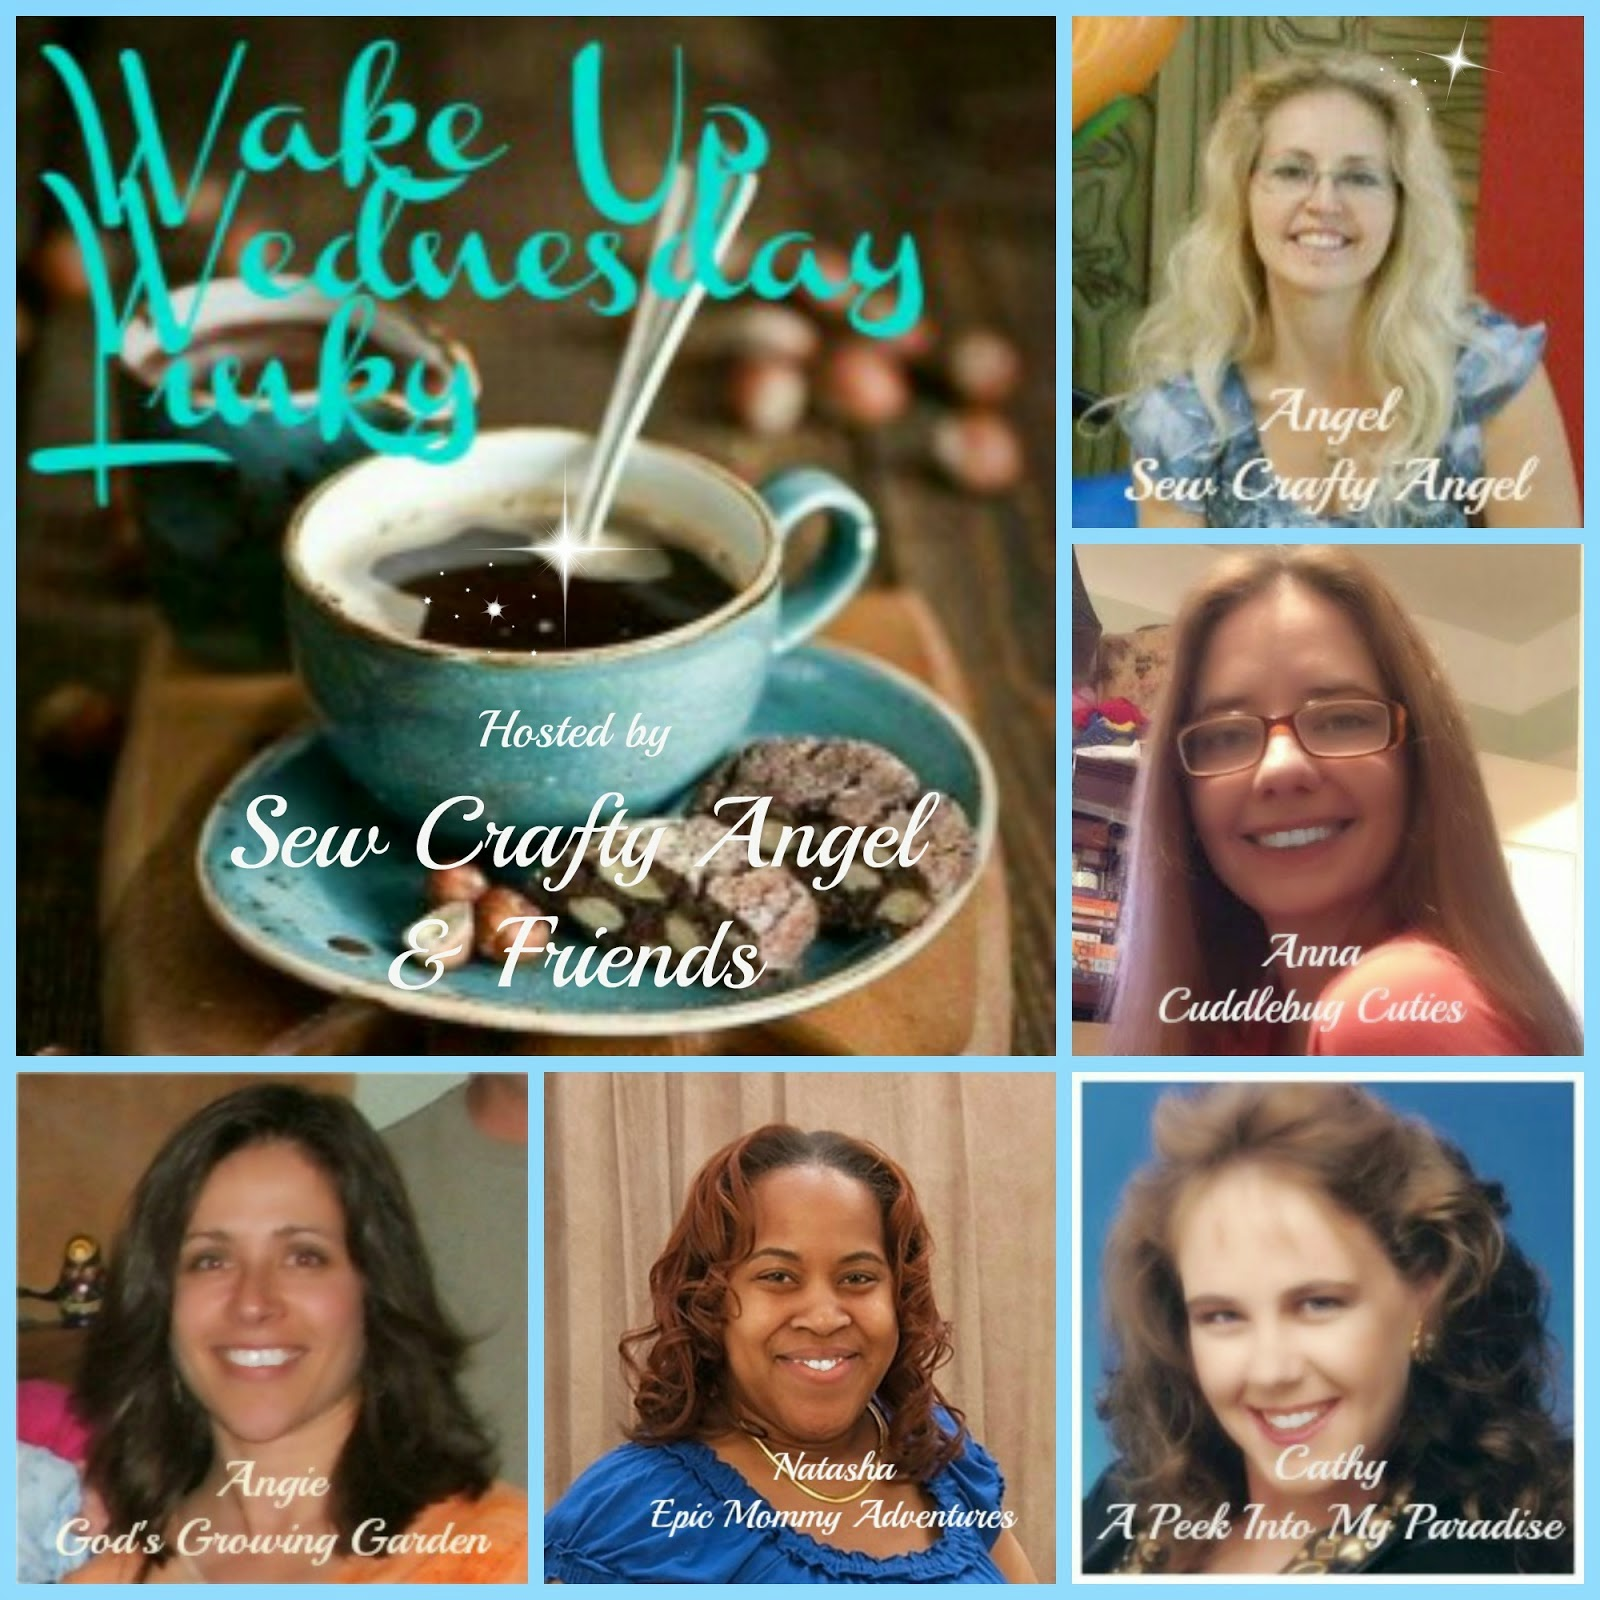 http://sewcraftyangel.blogspot.com/2015/04/wake-up-wednesday-linky-party-64.html